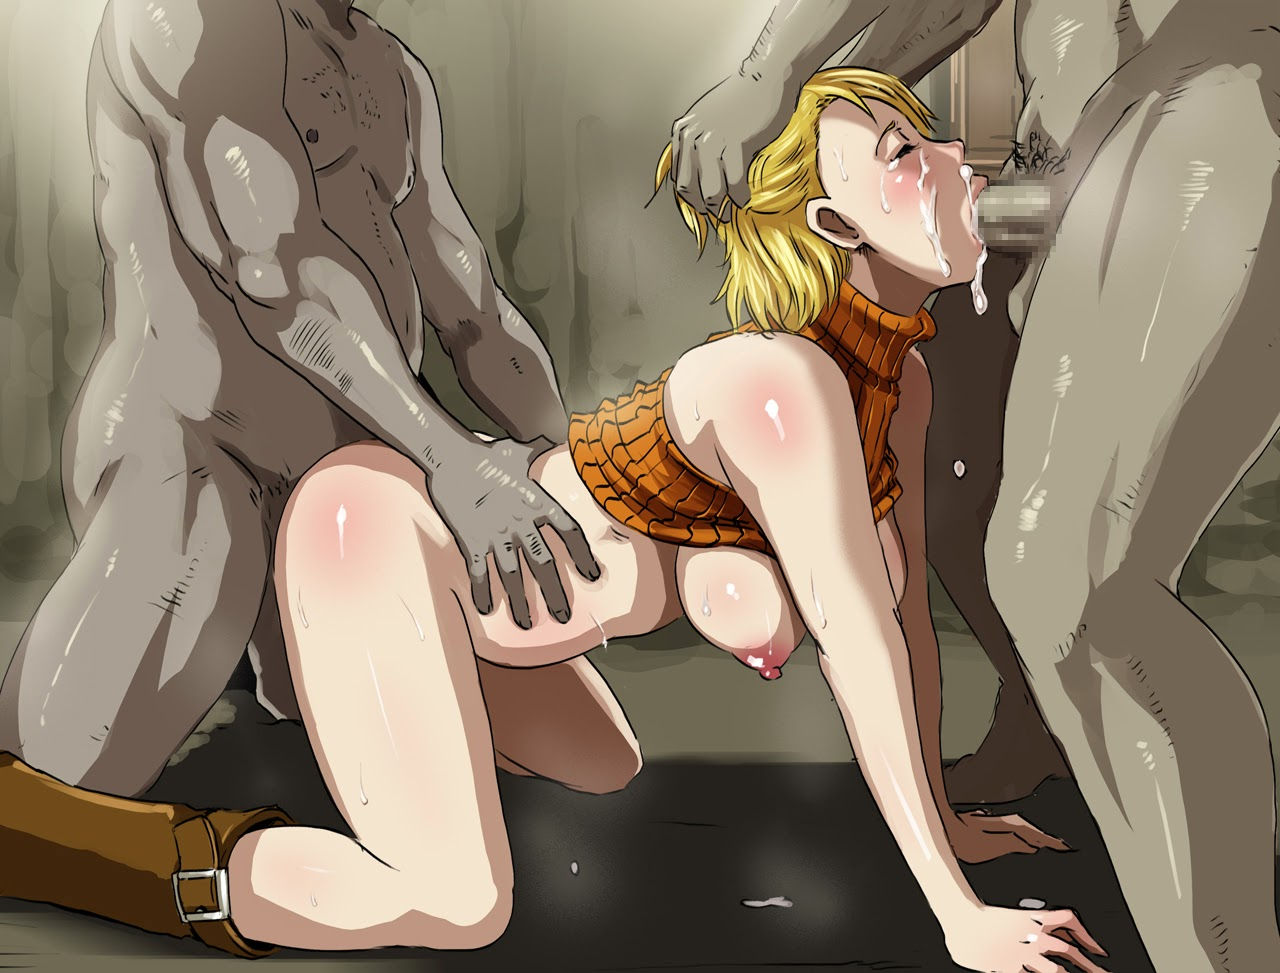 Hot nude pirate girl cartoon pornstar